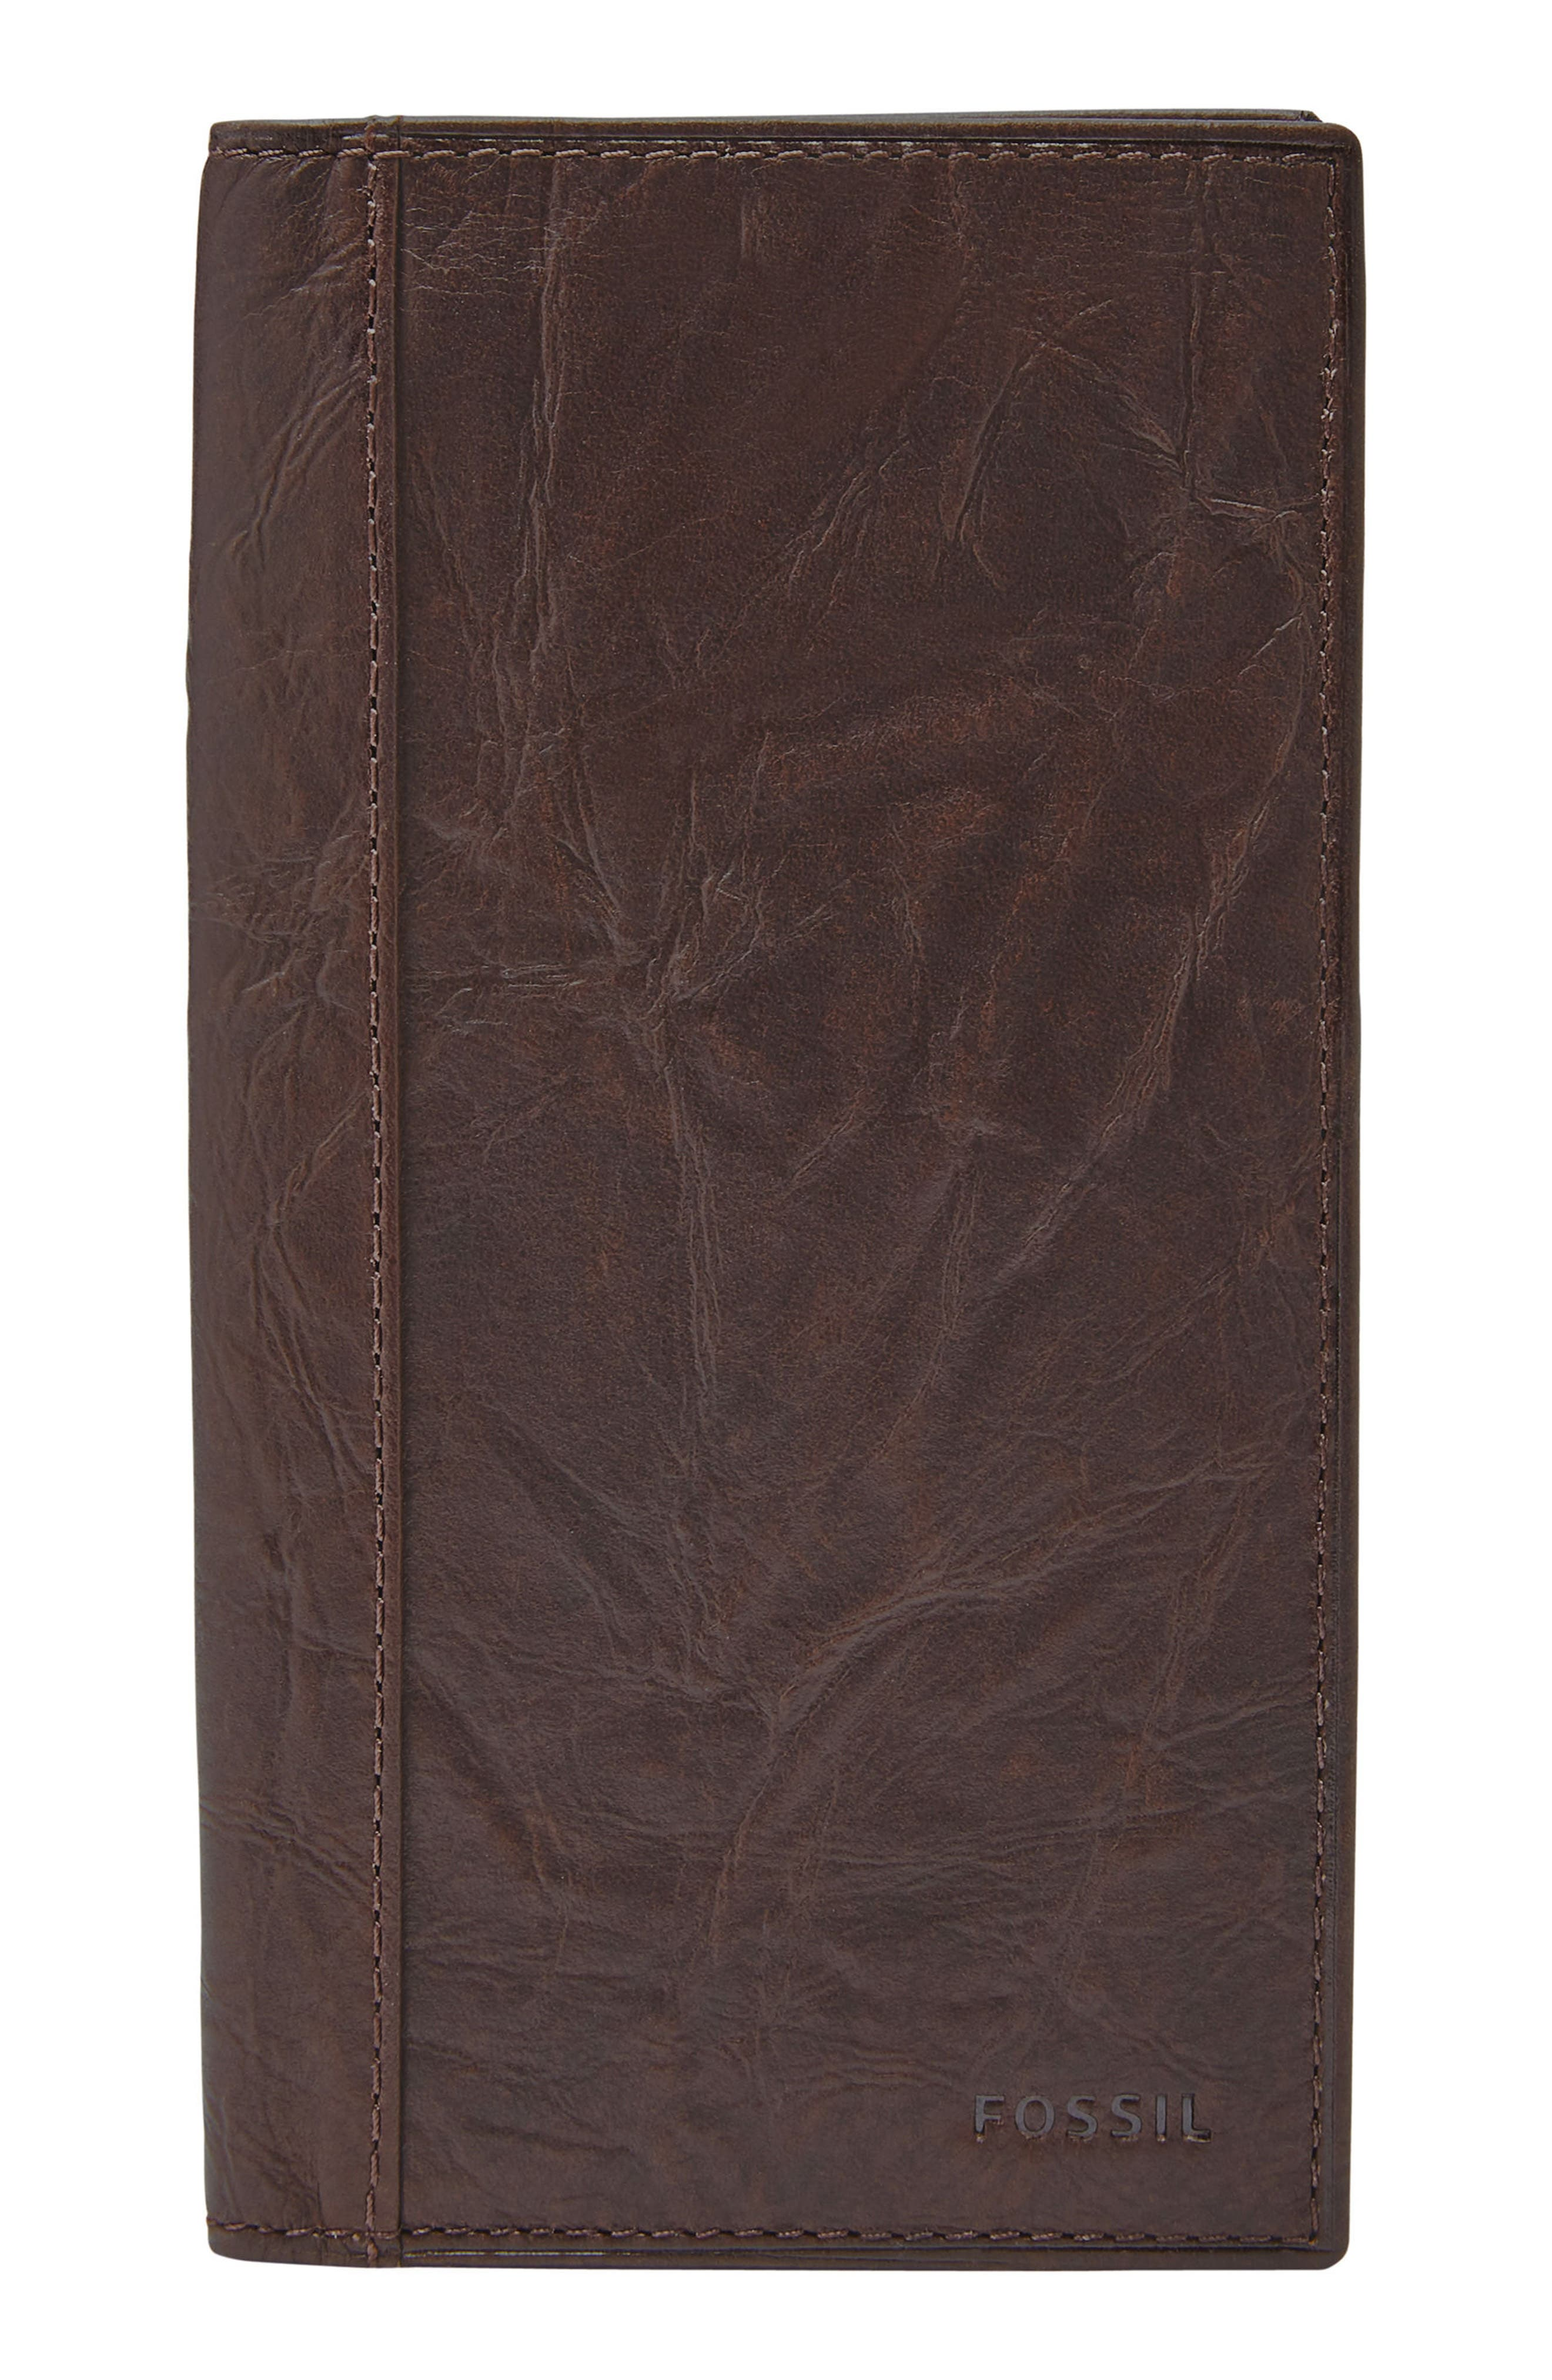 FOSSIL, Neel Leather Executive Wallet, Main thumbnail 1, color, BROWN